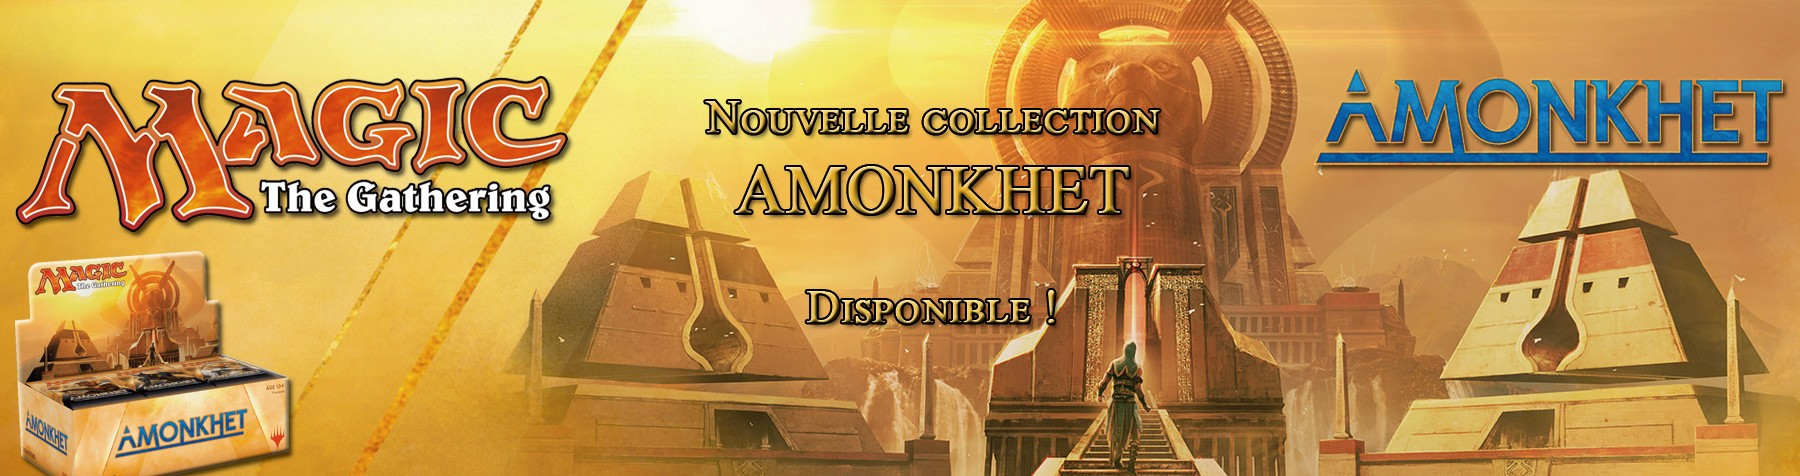 Nouvelle collection Amonkhet Magic The Gathering